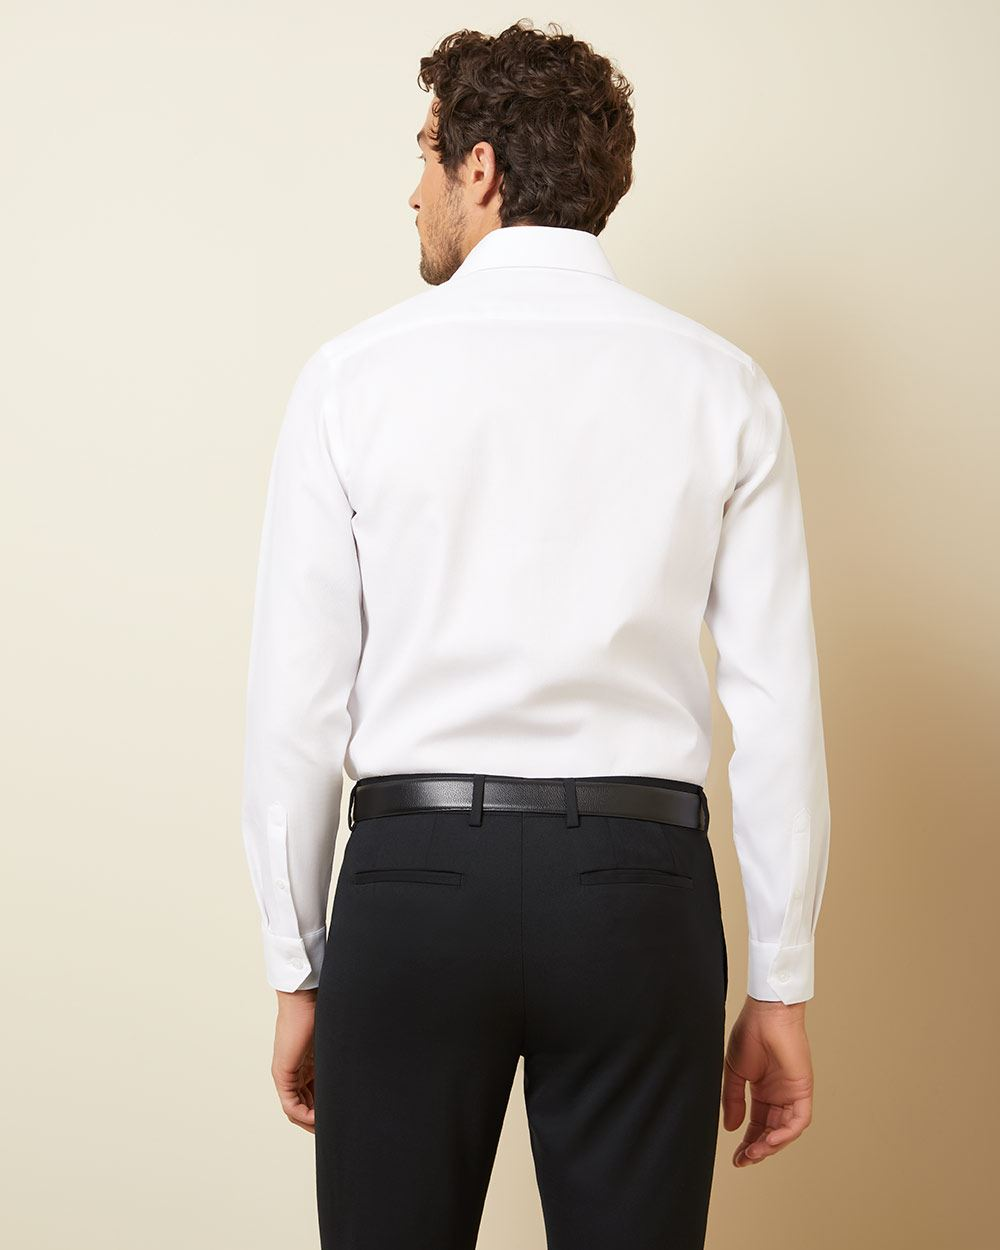 Tailored fit dress shirt with wide spread collar